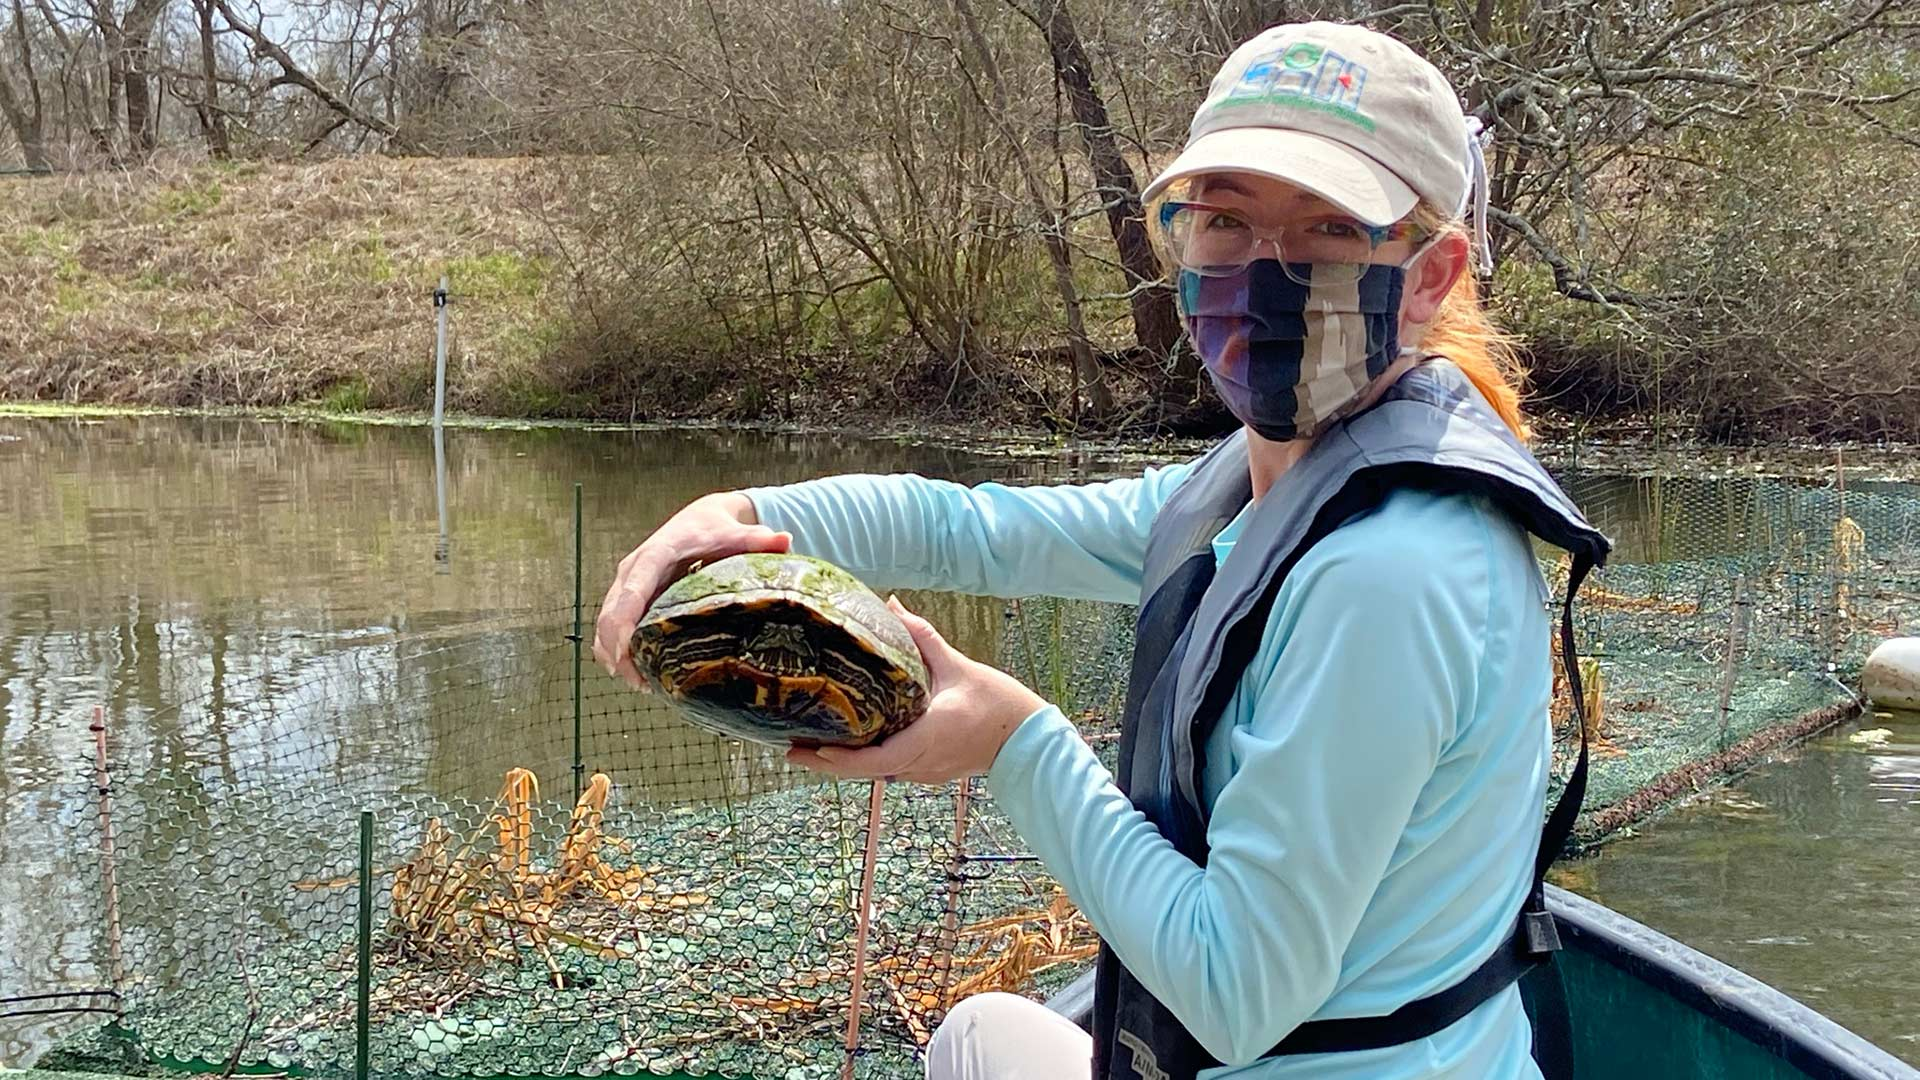 For local waterways, floating wetlands offer filtration power